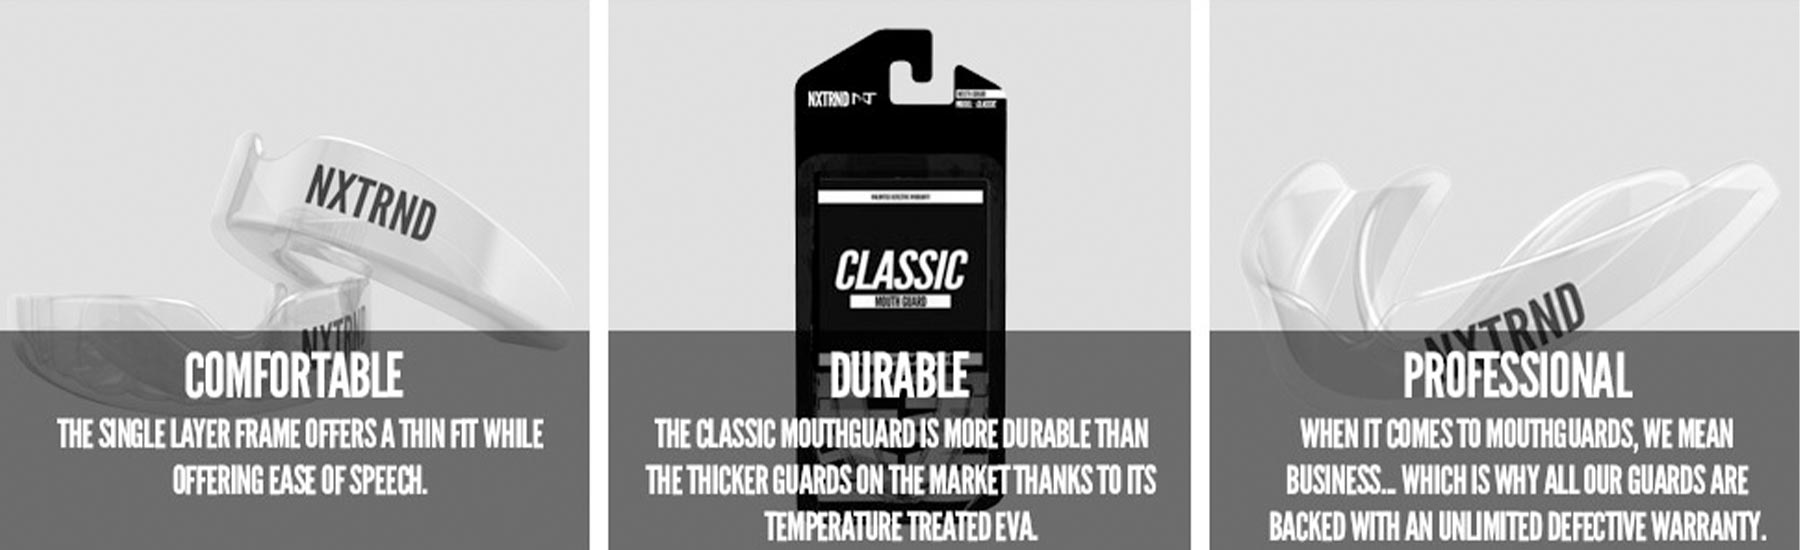 Nxtrnd CLASSIC Mouthguard Sports